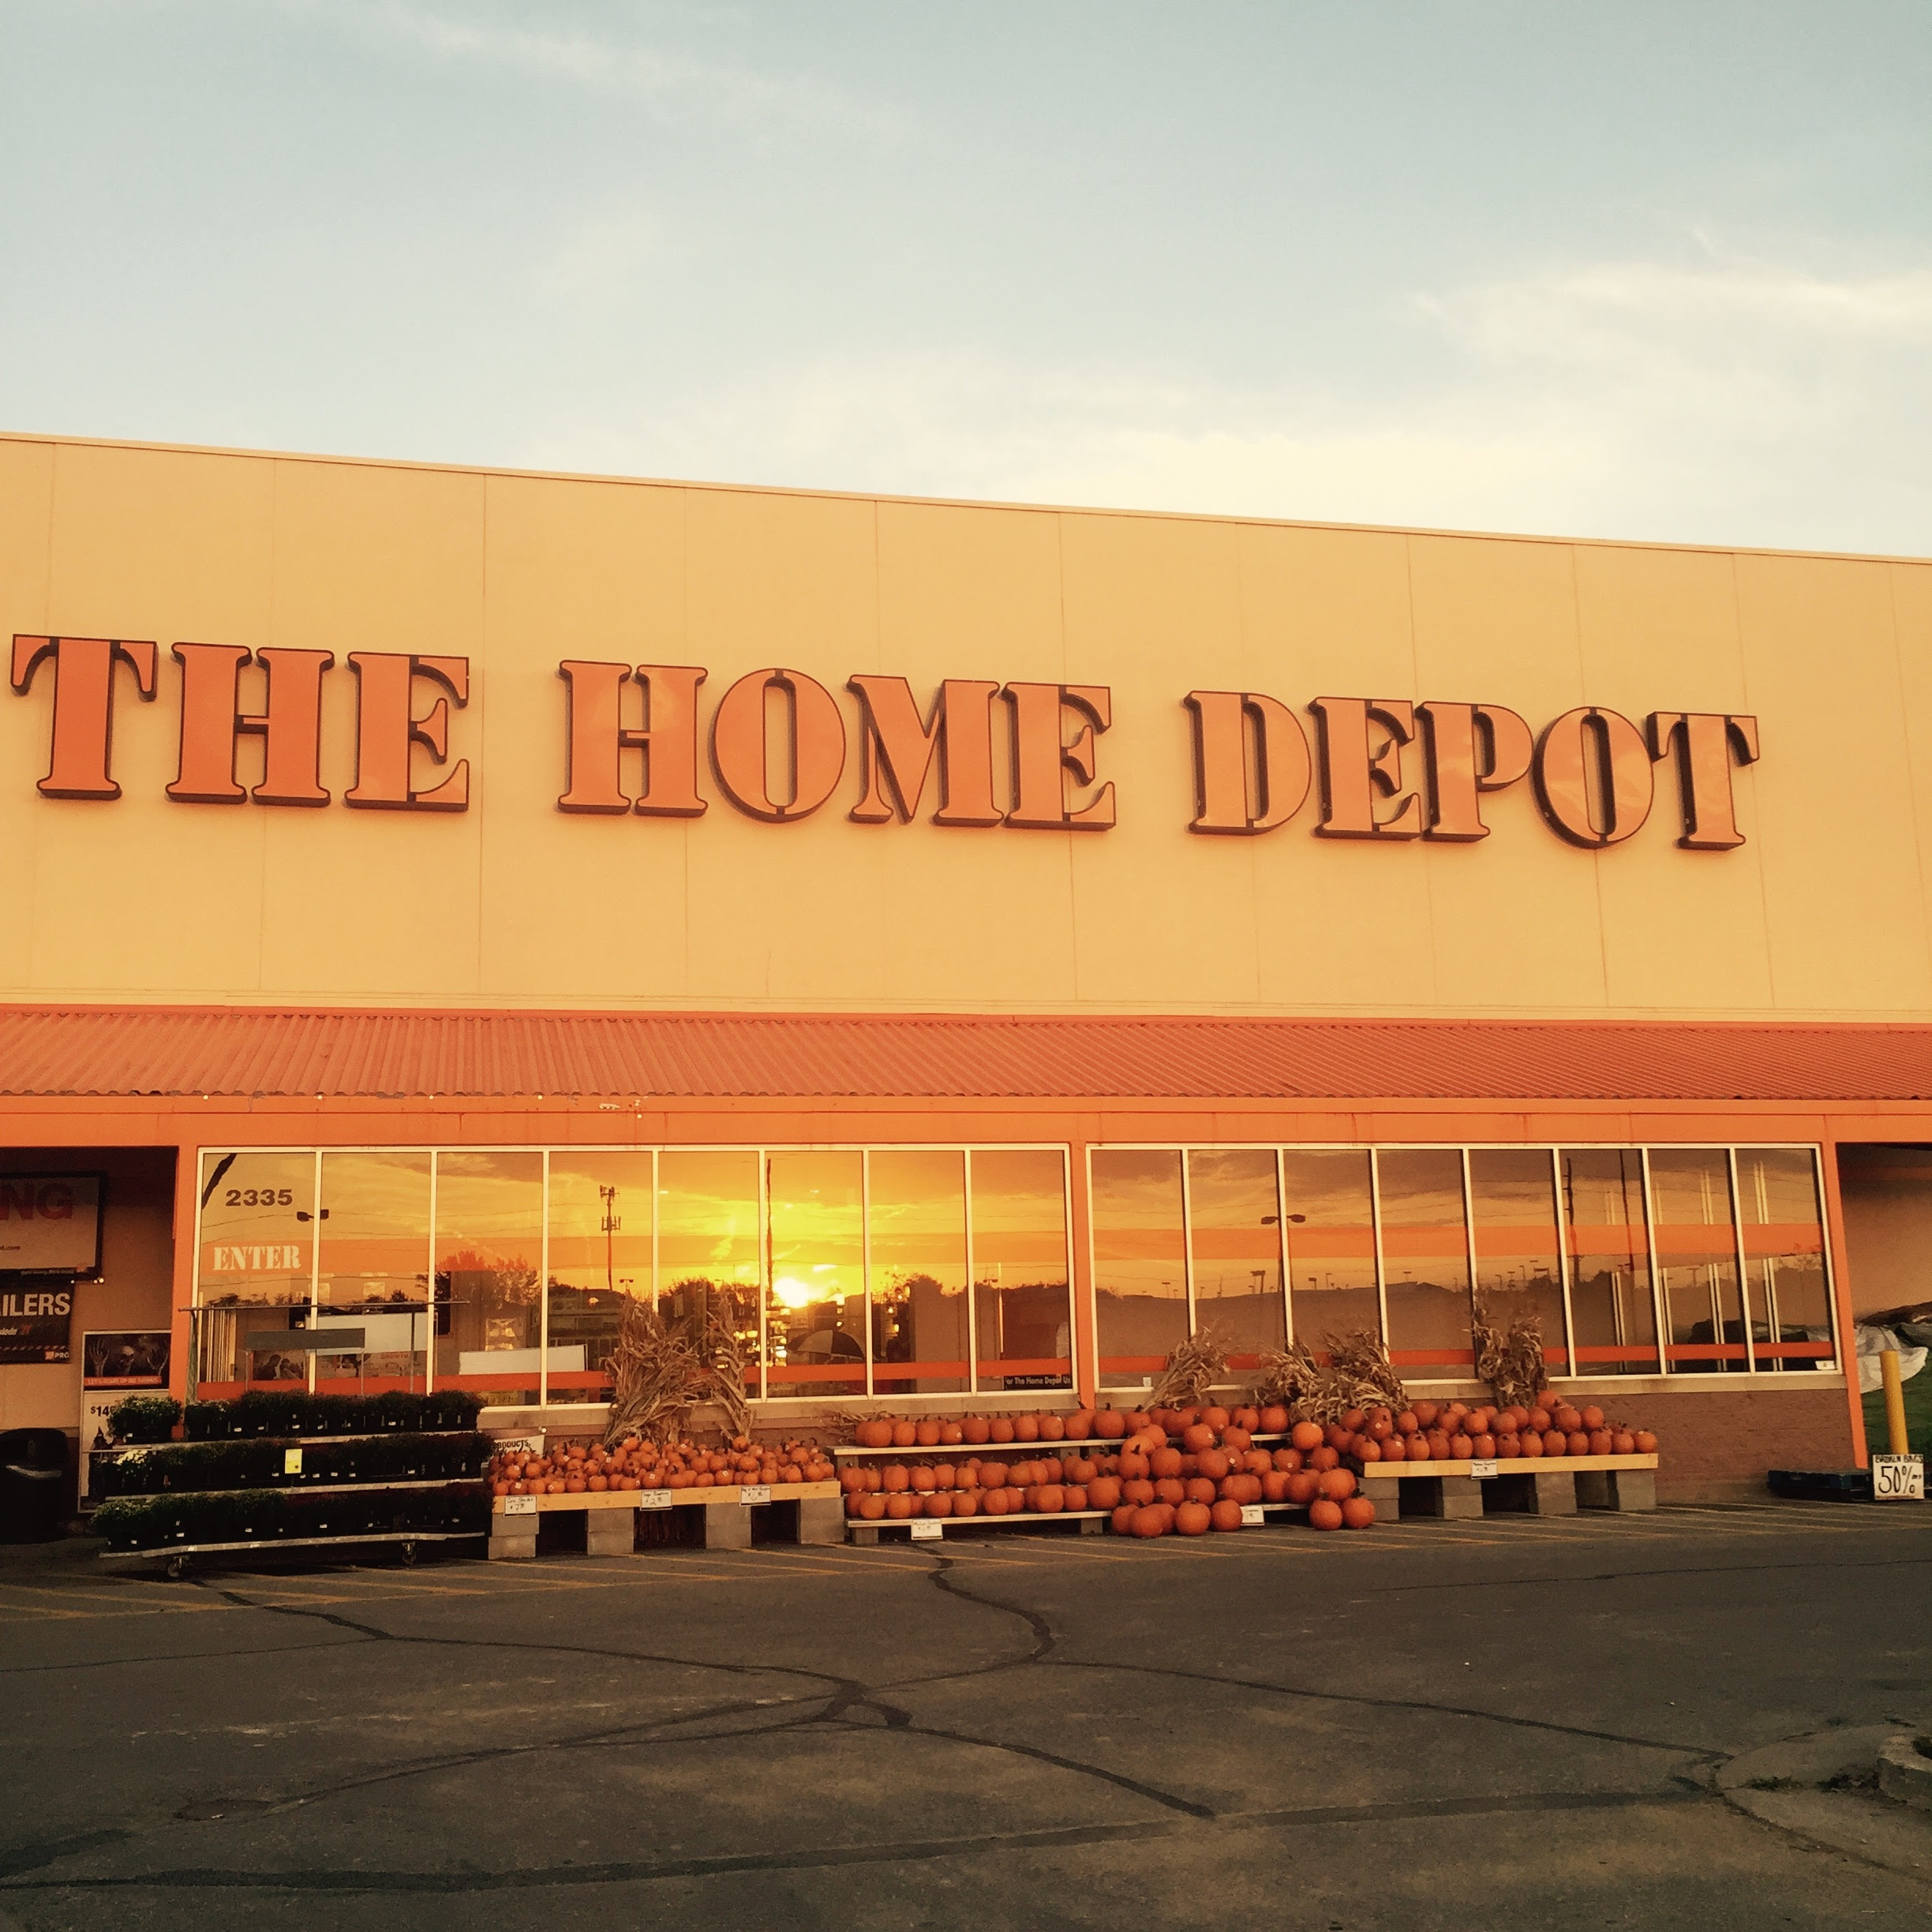 The Home Depot 2335 Se Delaware Ave Ankeny IA Home Depot MapQuest